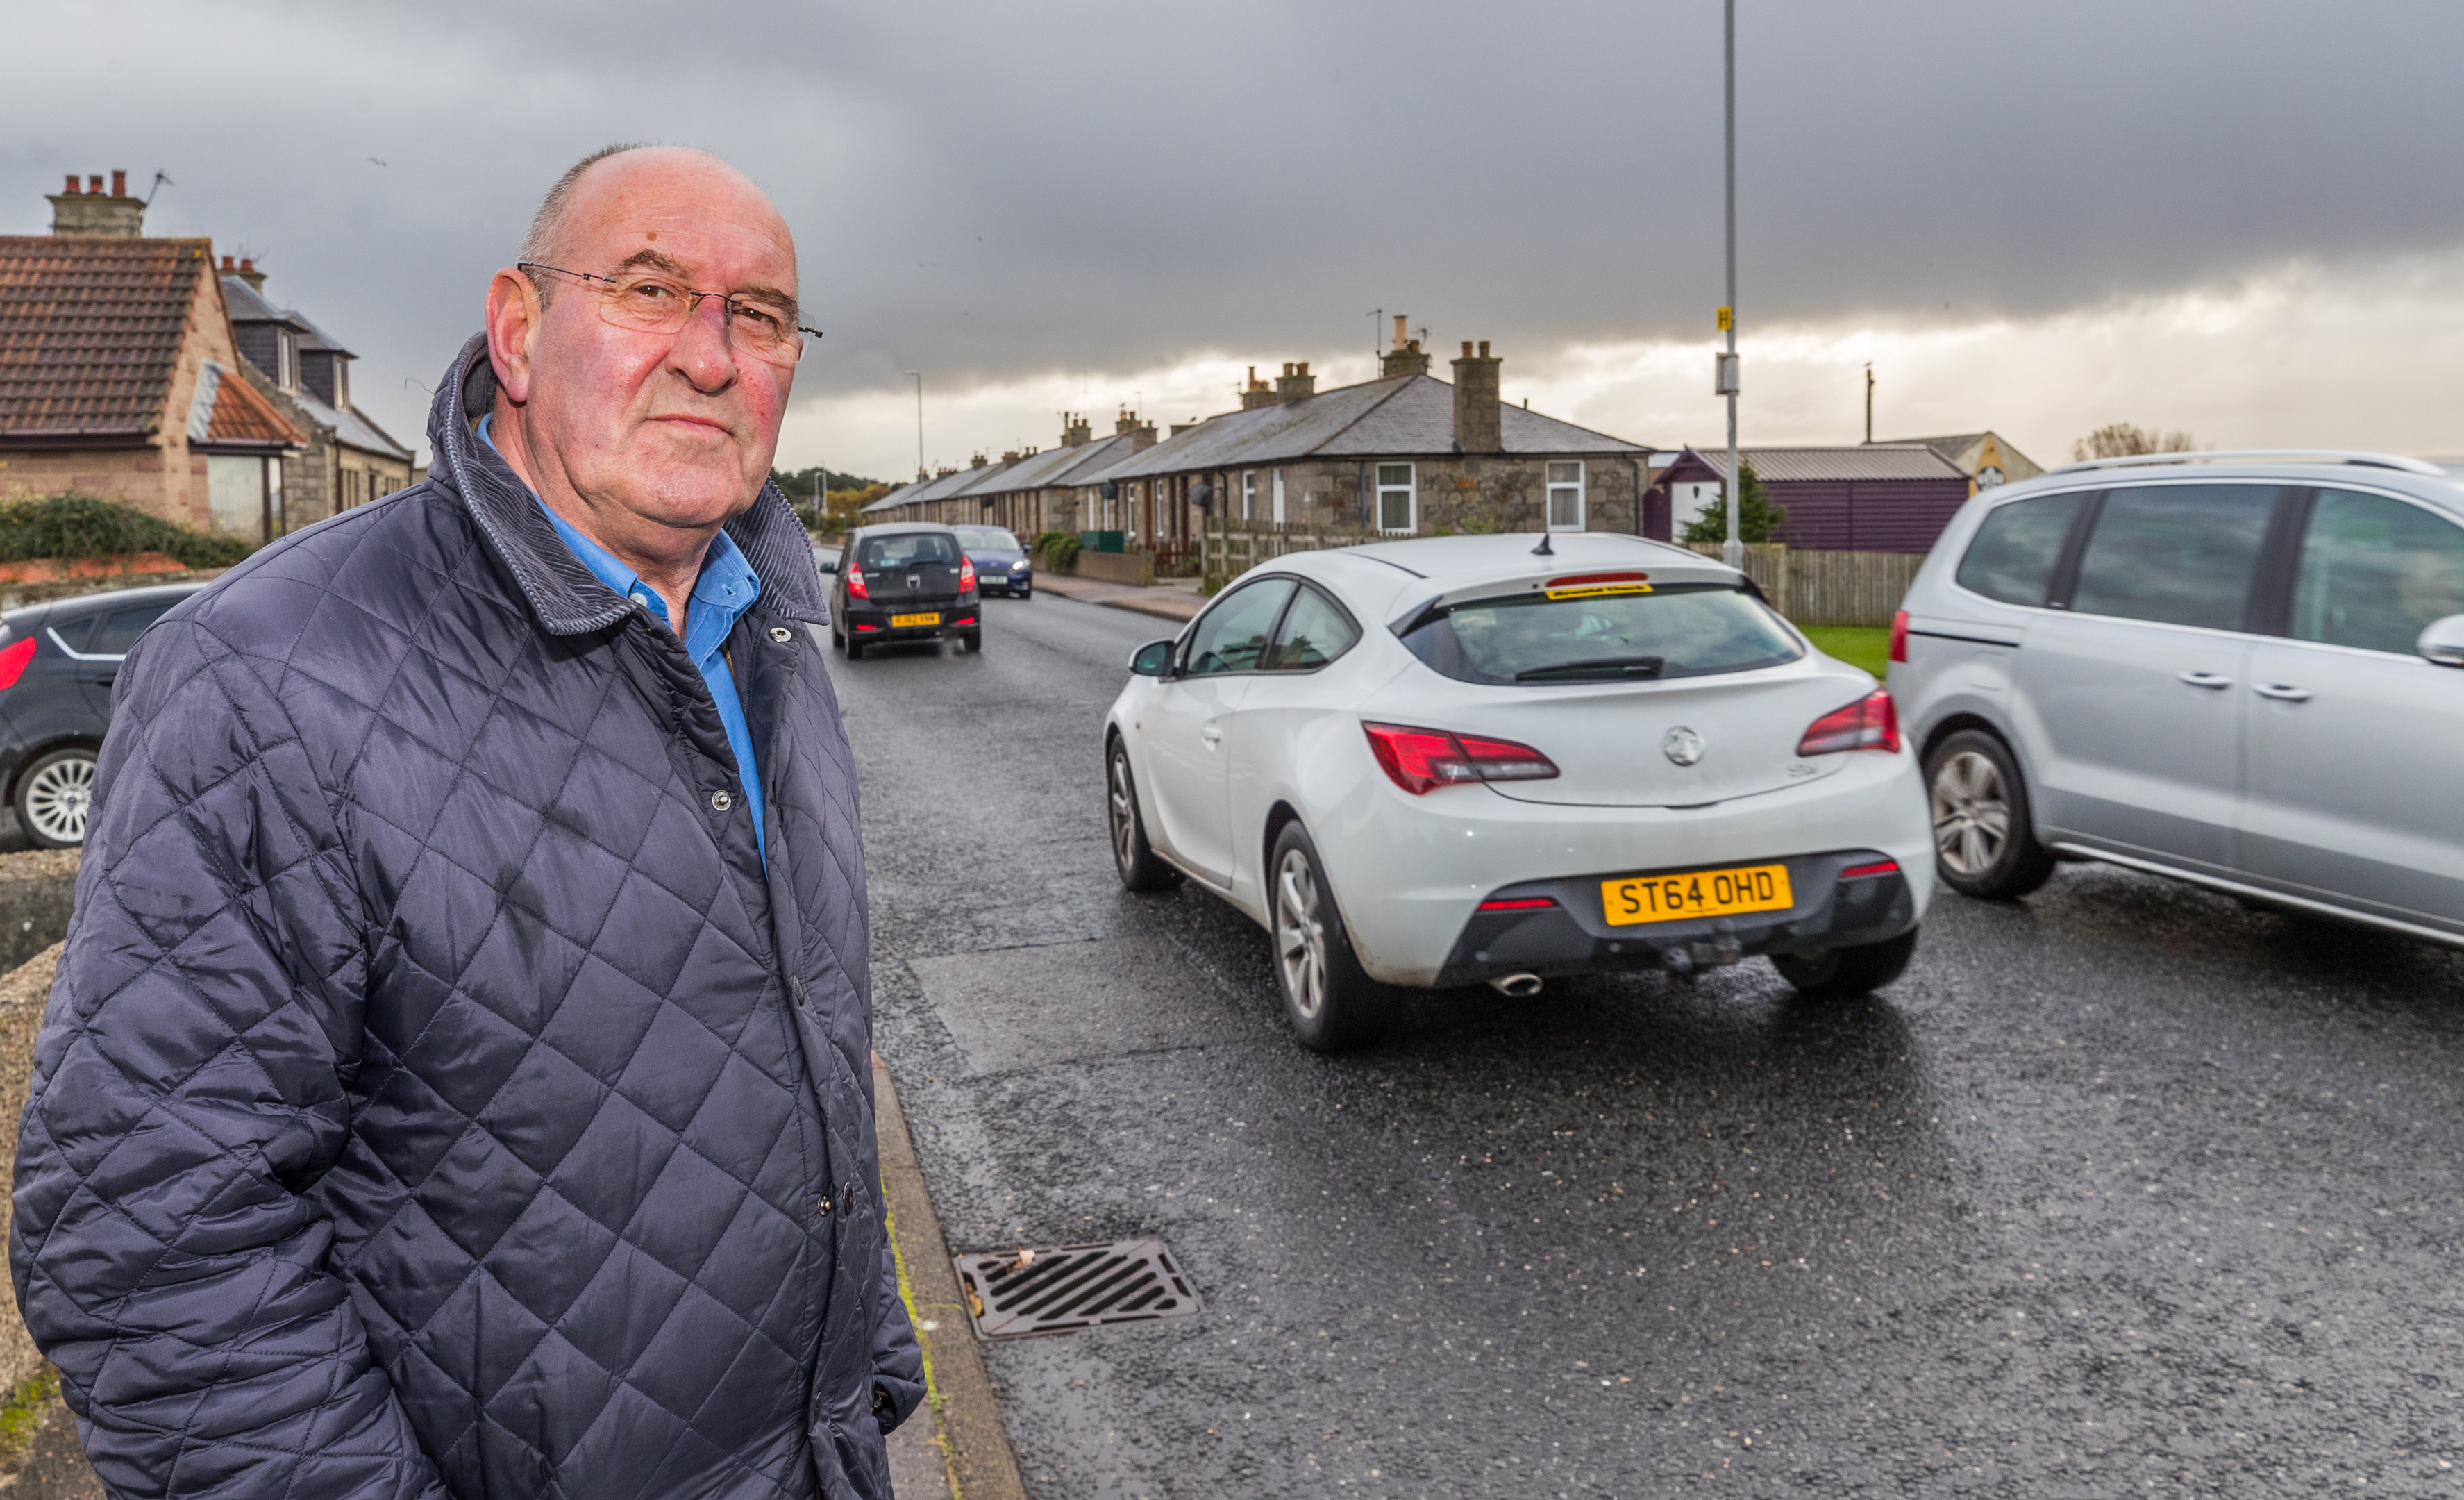 Community councilor Mike Mulholland hopes the new crossing will improve road safety on Lossiemouth's Elgin Road.